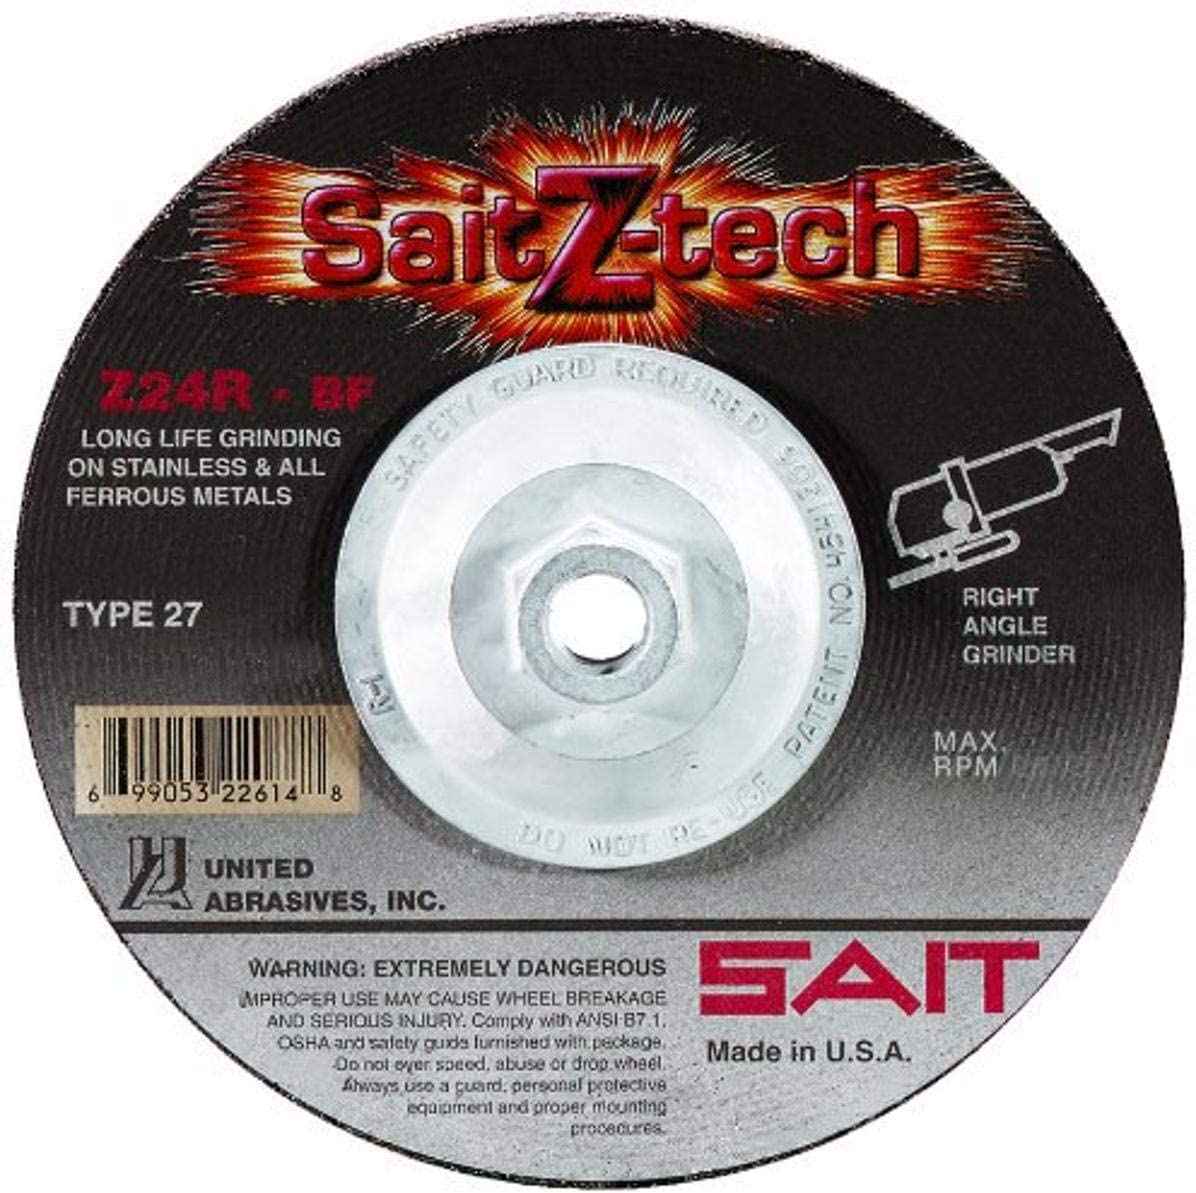 United Abrasives-SAIT 22612 Ranking TOP19 5 by 1 Gr 27 Ranking TOP8 Z-TECH Type 8-11 4